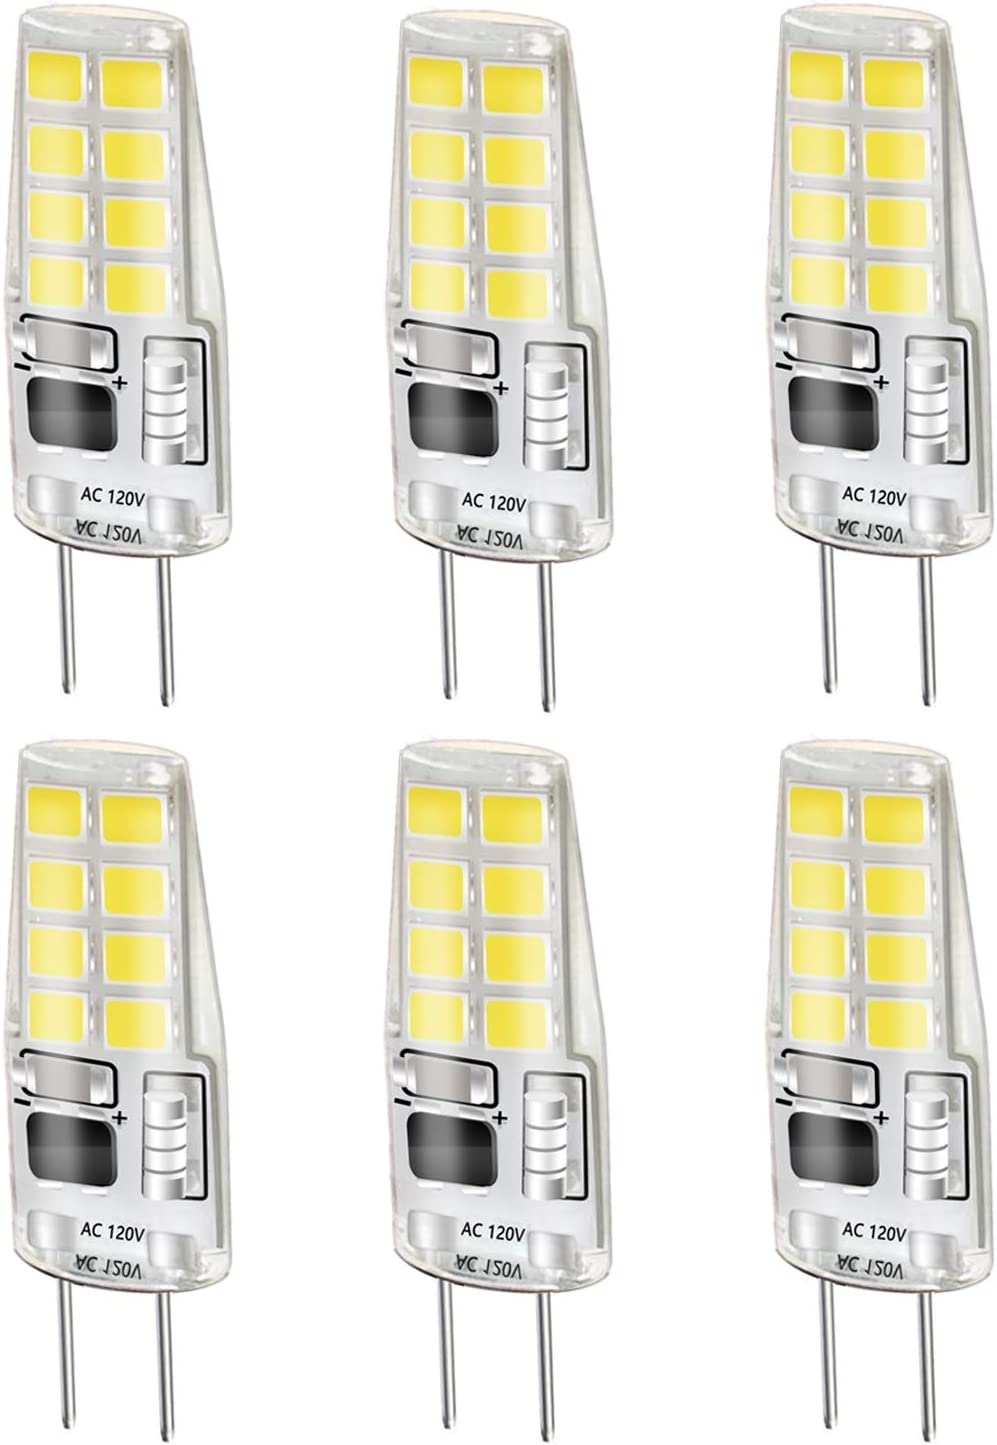 LEKE G8 Bulb White 3W G8 LED Bulb Equivalent to G8 Halogen Bulb 20W-25W AC 110v/120v/130v Dimmable G8 Light Bulb 6000k(6 Pack)